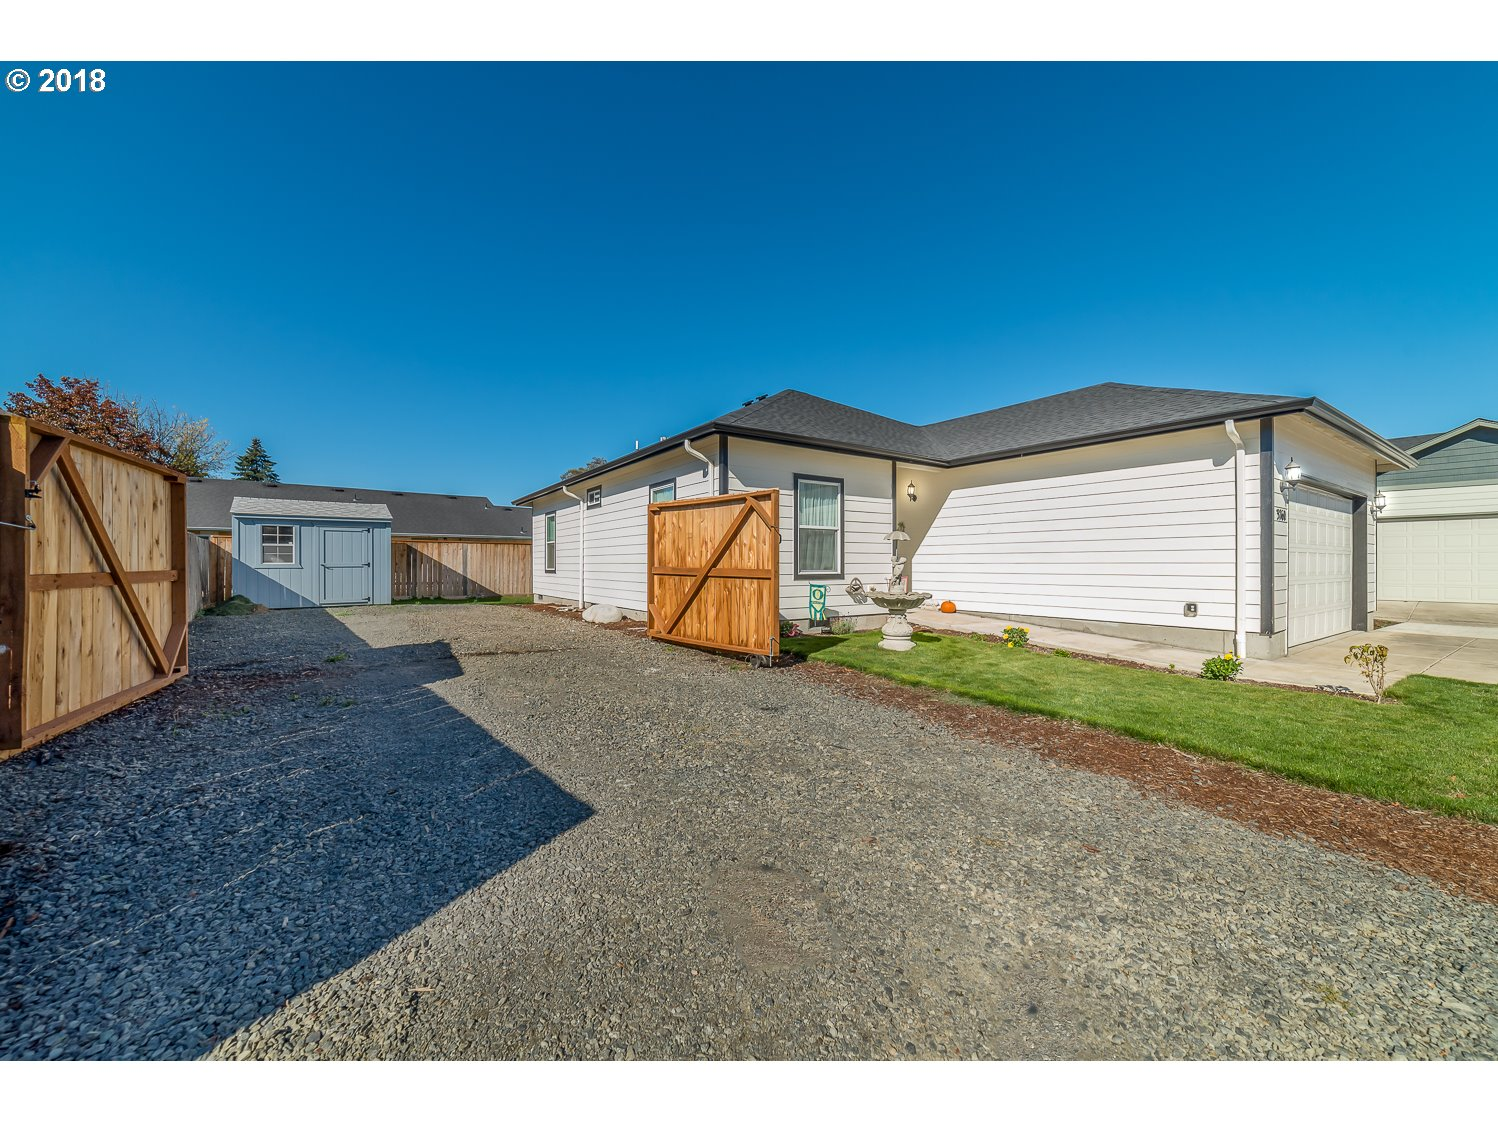 3760 E ST Springfield, OR 97478 - MLS #: 18128592